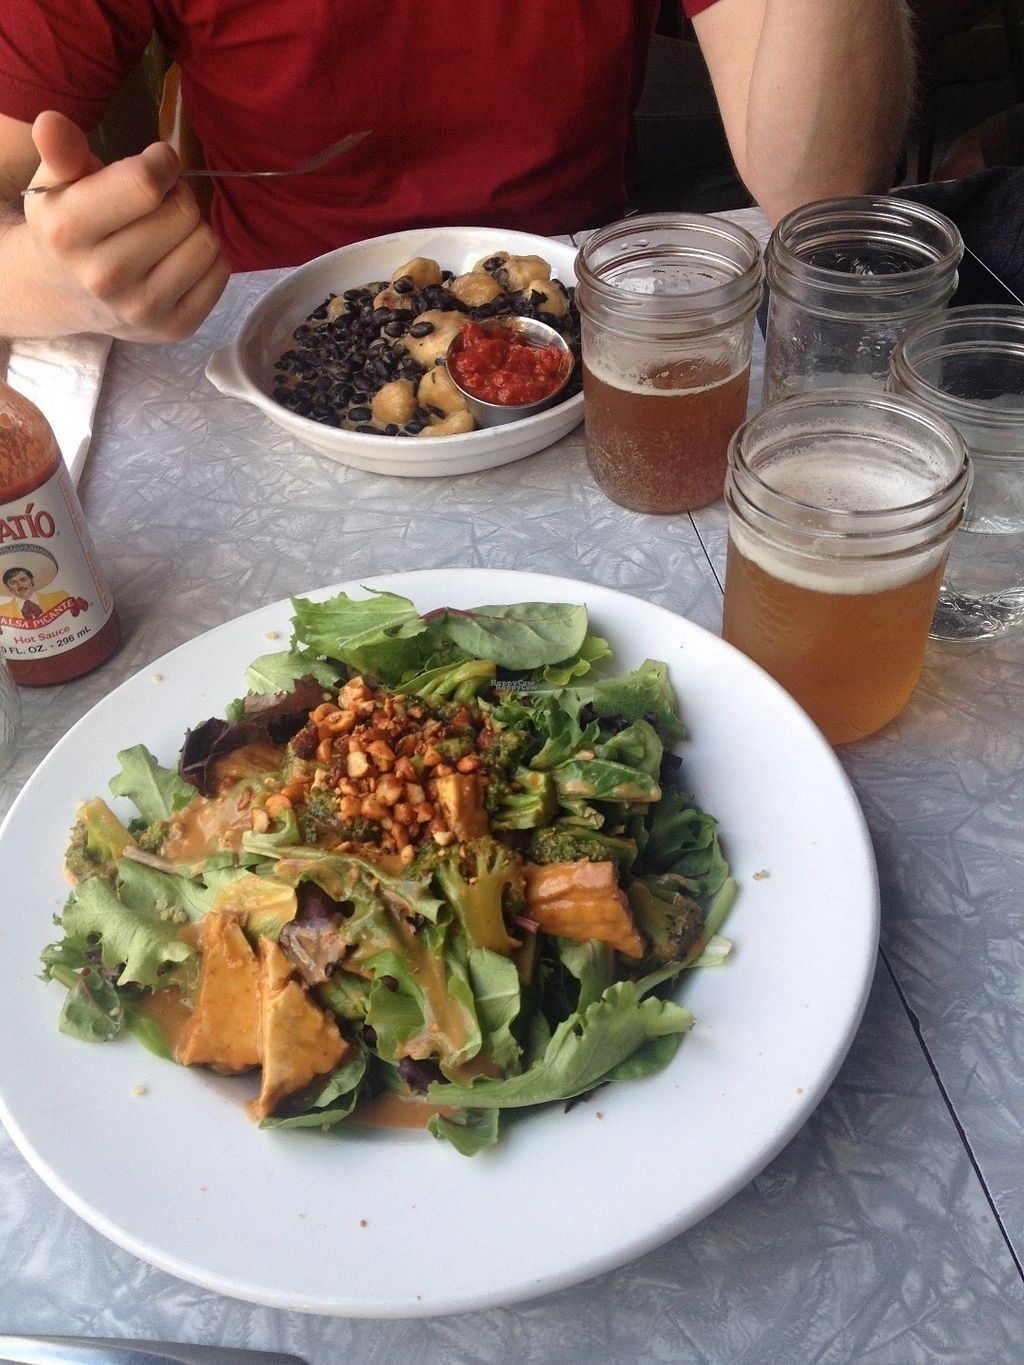 """Photo of CLOSED: The Foundation Lounge  by <a href=""""/members/profile/o0Carolyn0o"""">o0Carolyn0o</a> <br/>Tofu and peanut sauce salad(below), and beans with banana(above) <br/> September 26, 2016  - <a href='/contact/abuse/image/1264/178106'>Report</a>"""